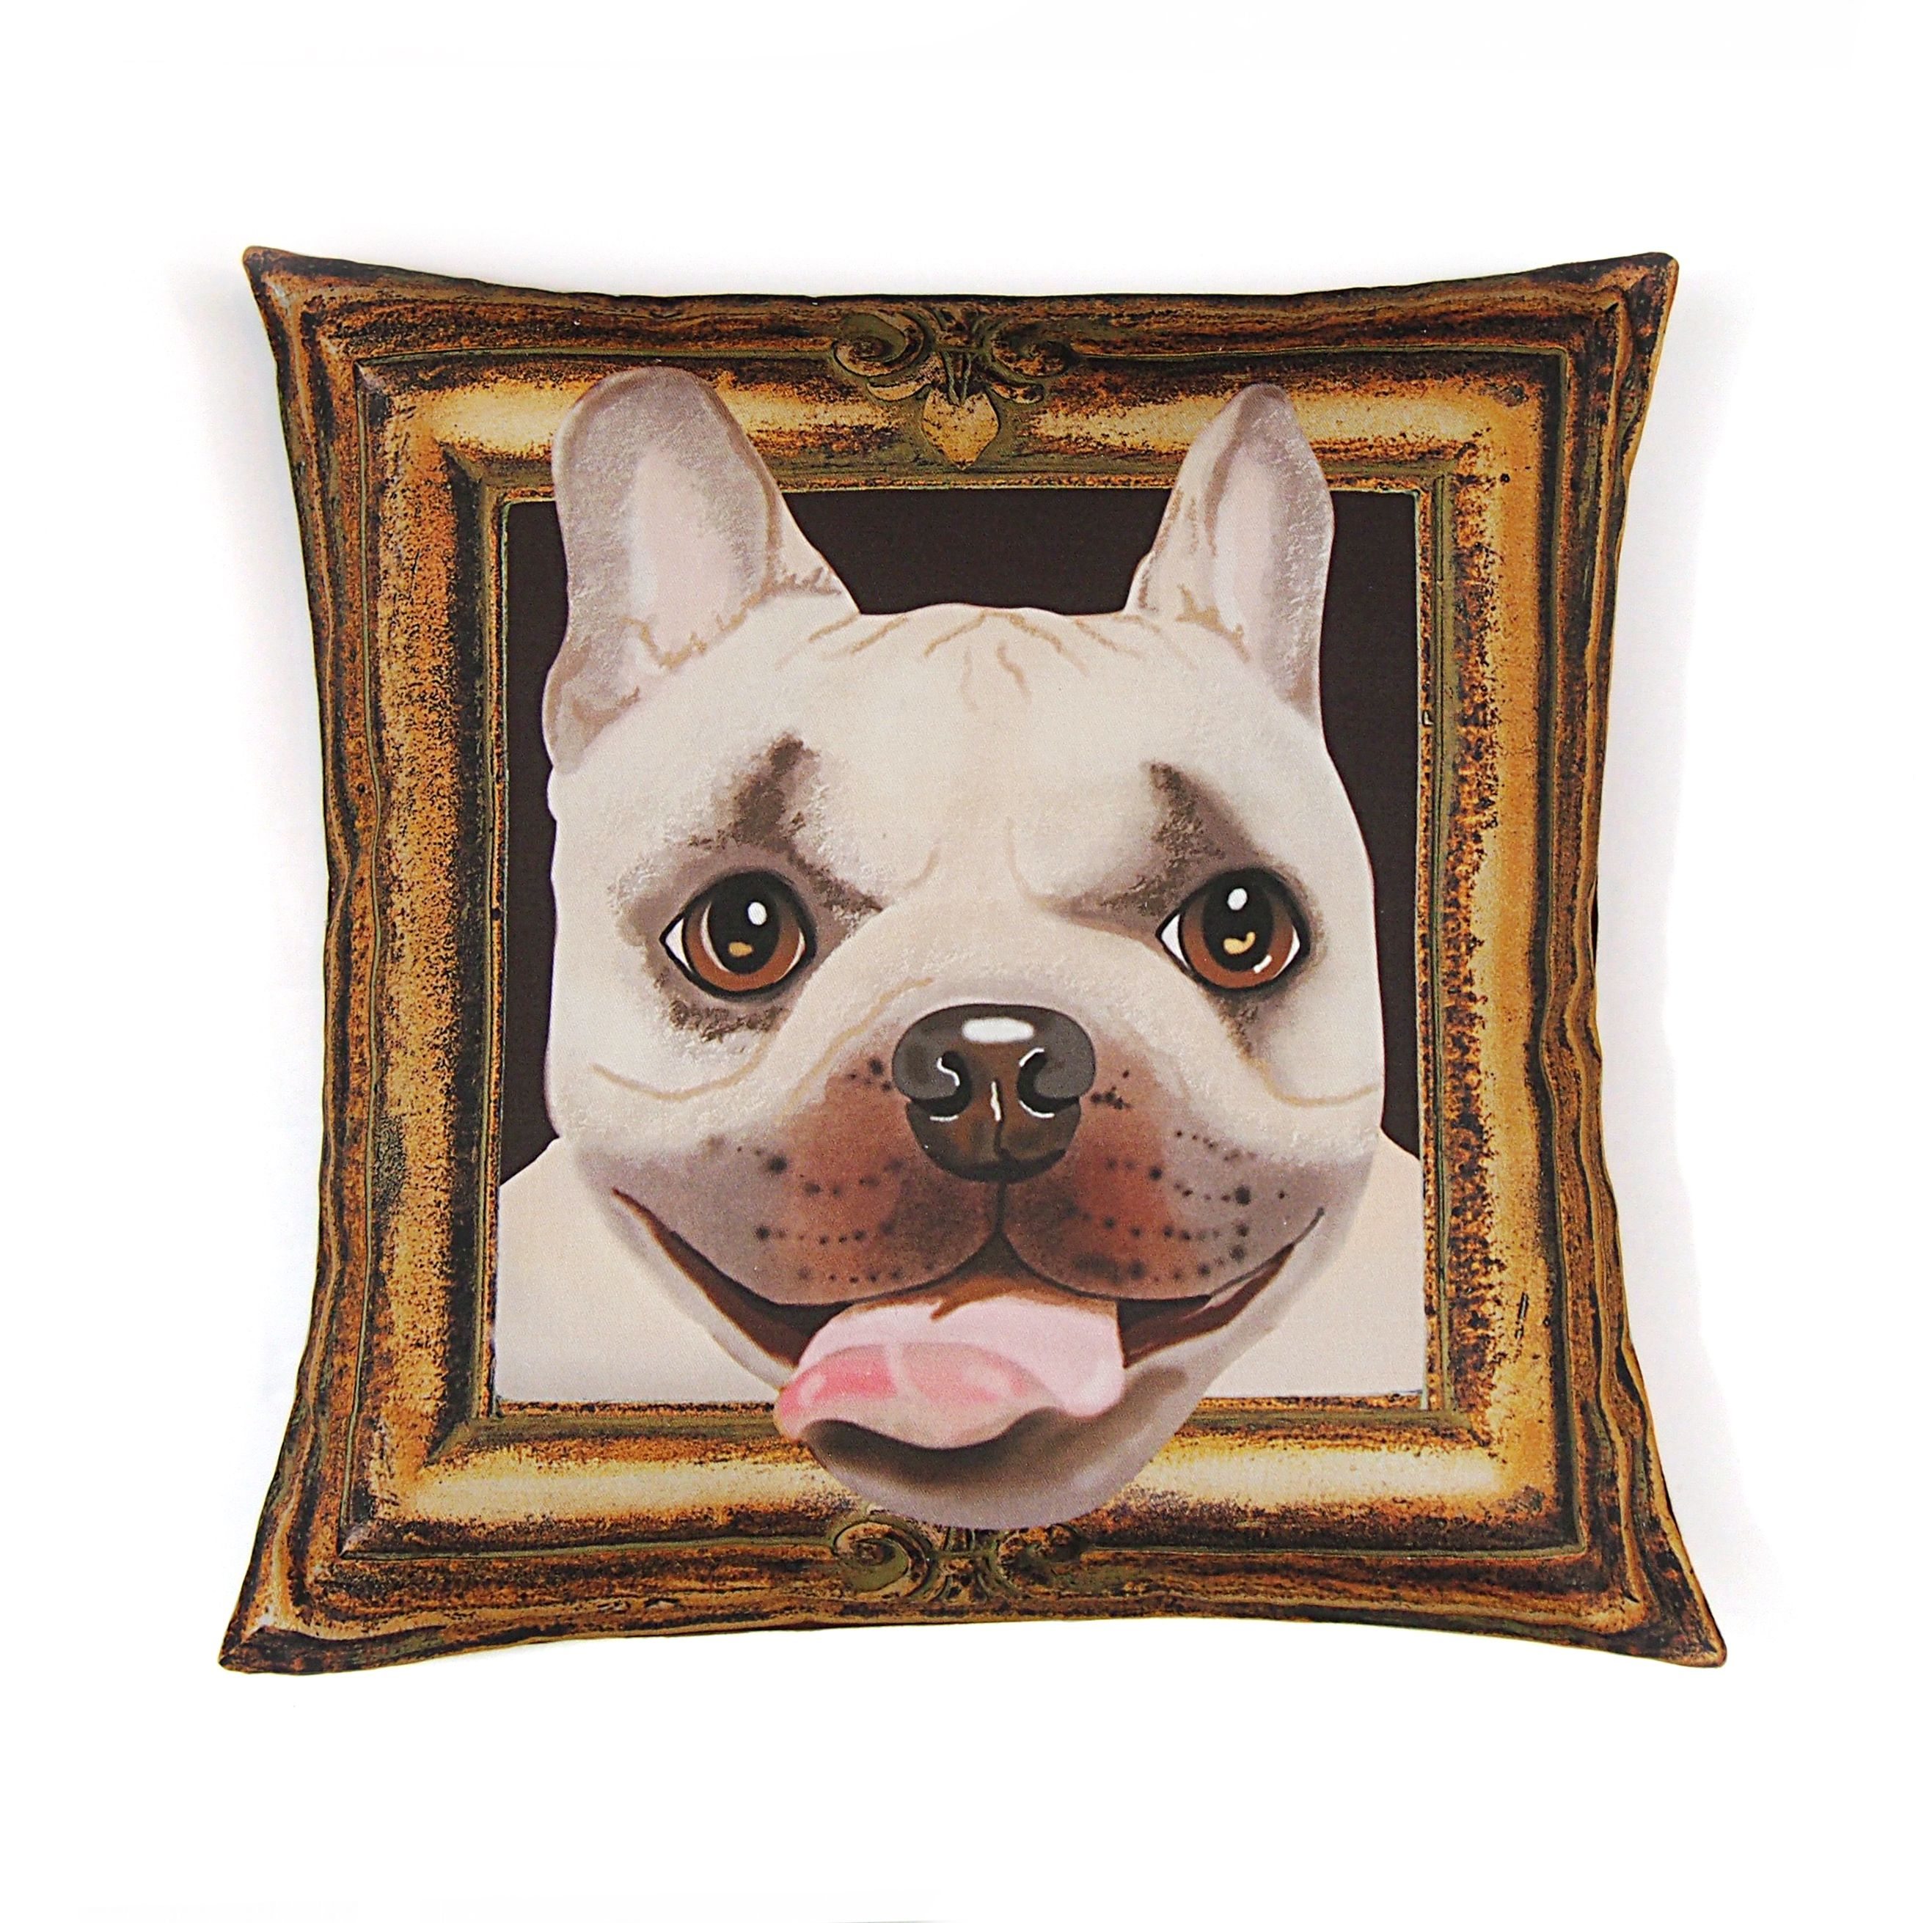 French Bulldog Pillow Cover Adorable Little Fawn And Brown Frenchie